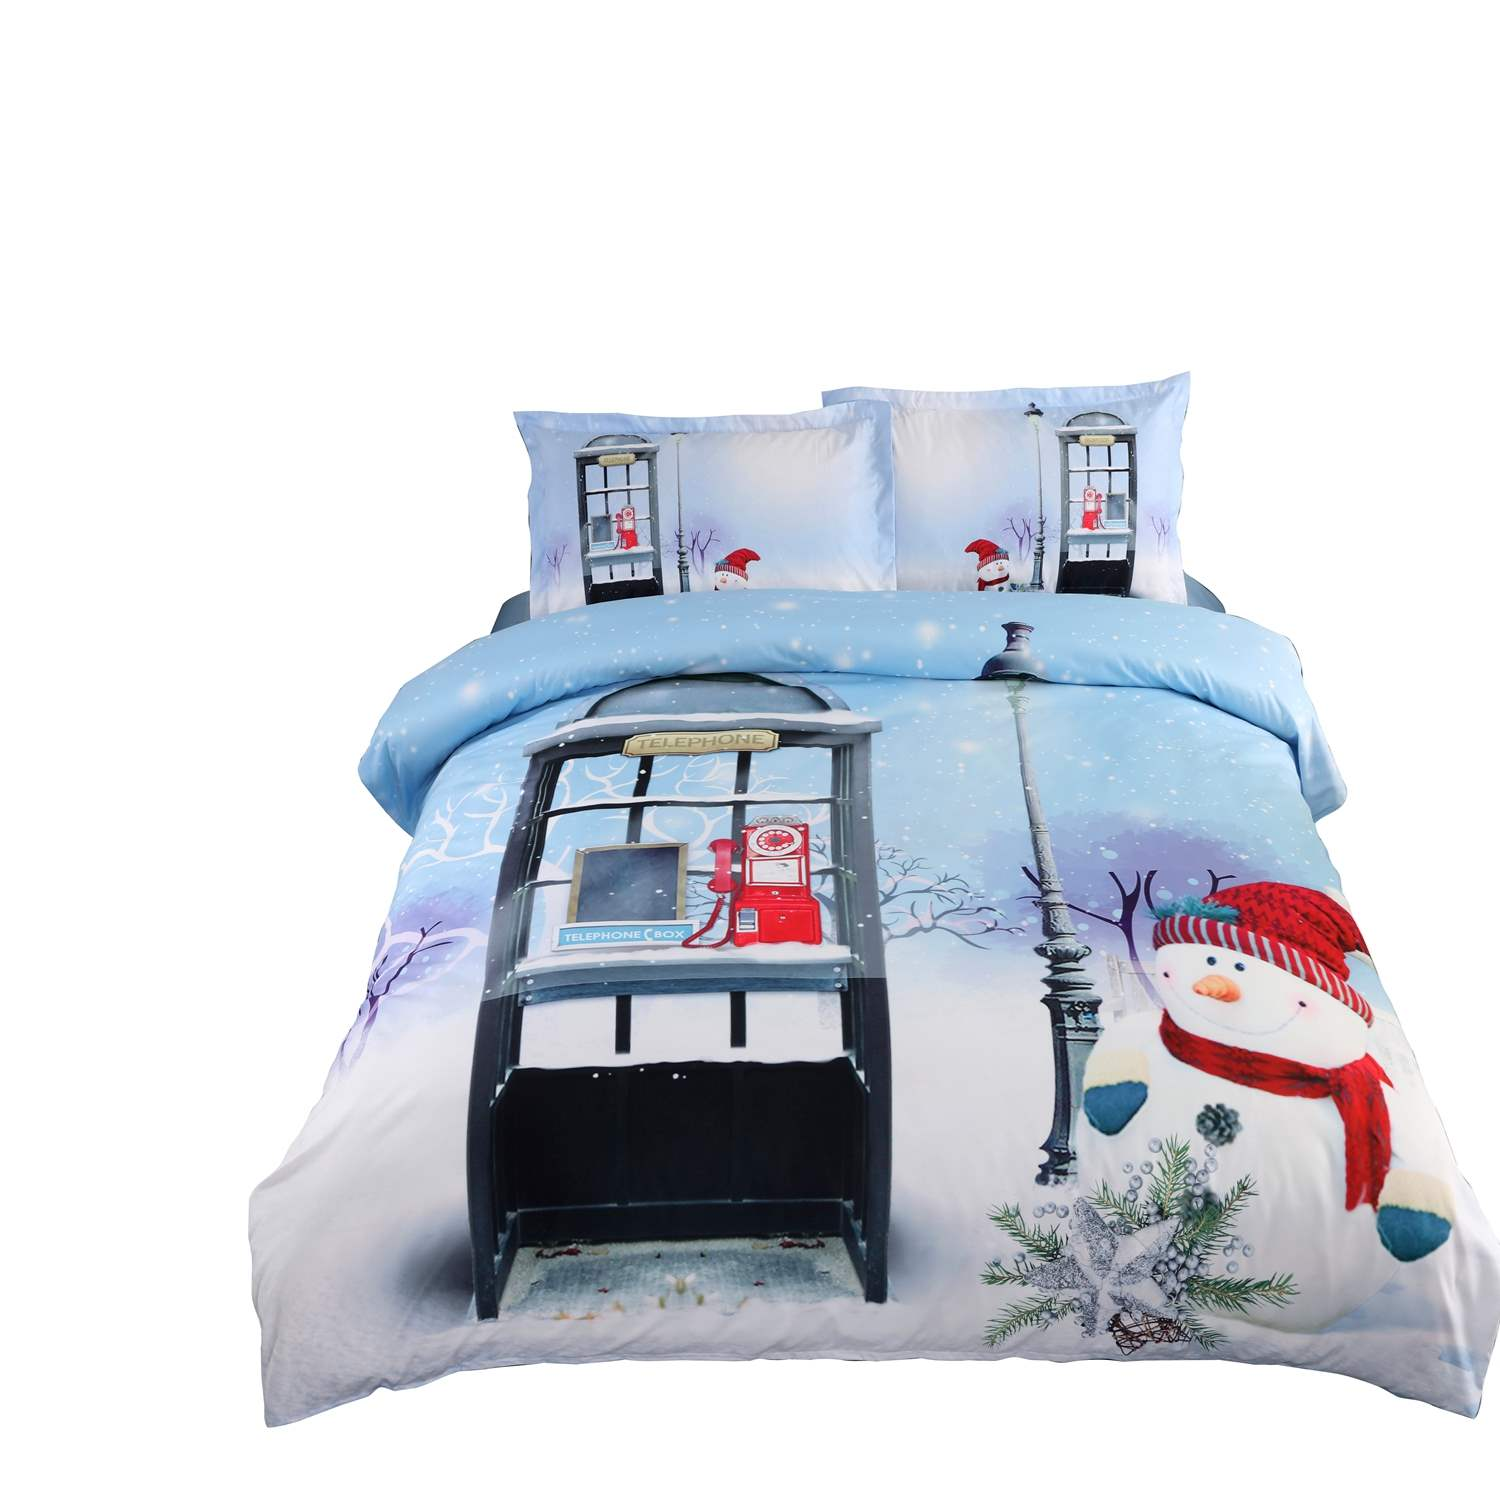 3D Christmas Snowman and Telephone Booth Printed 4-Piece Bedding Sets/Duvet Covers